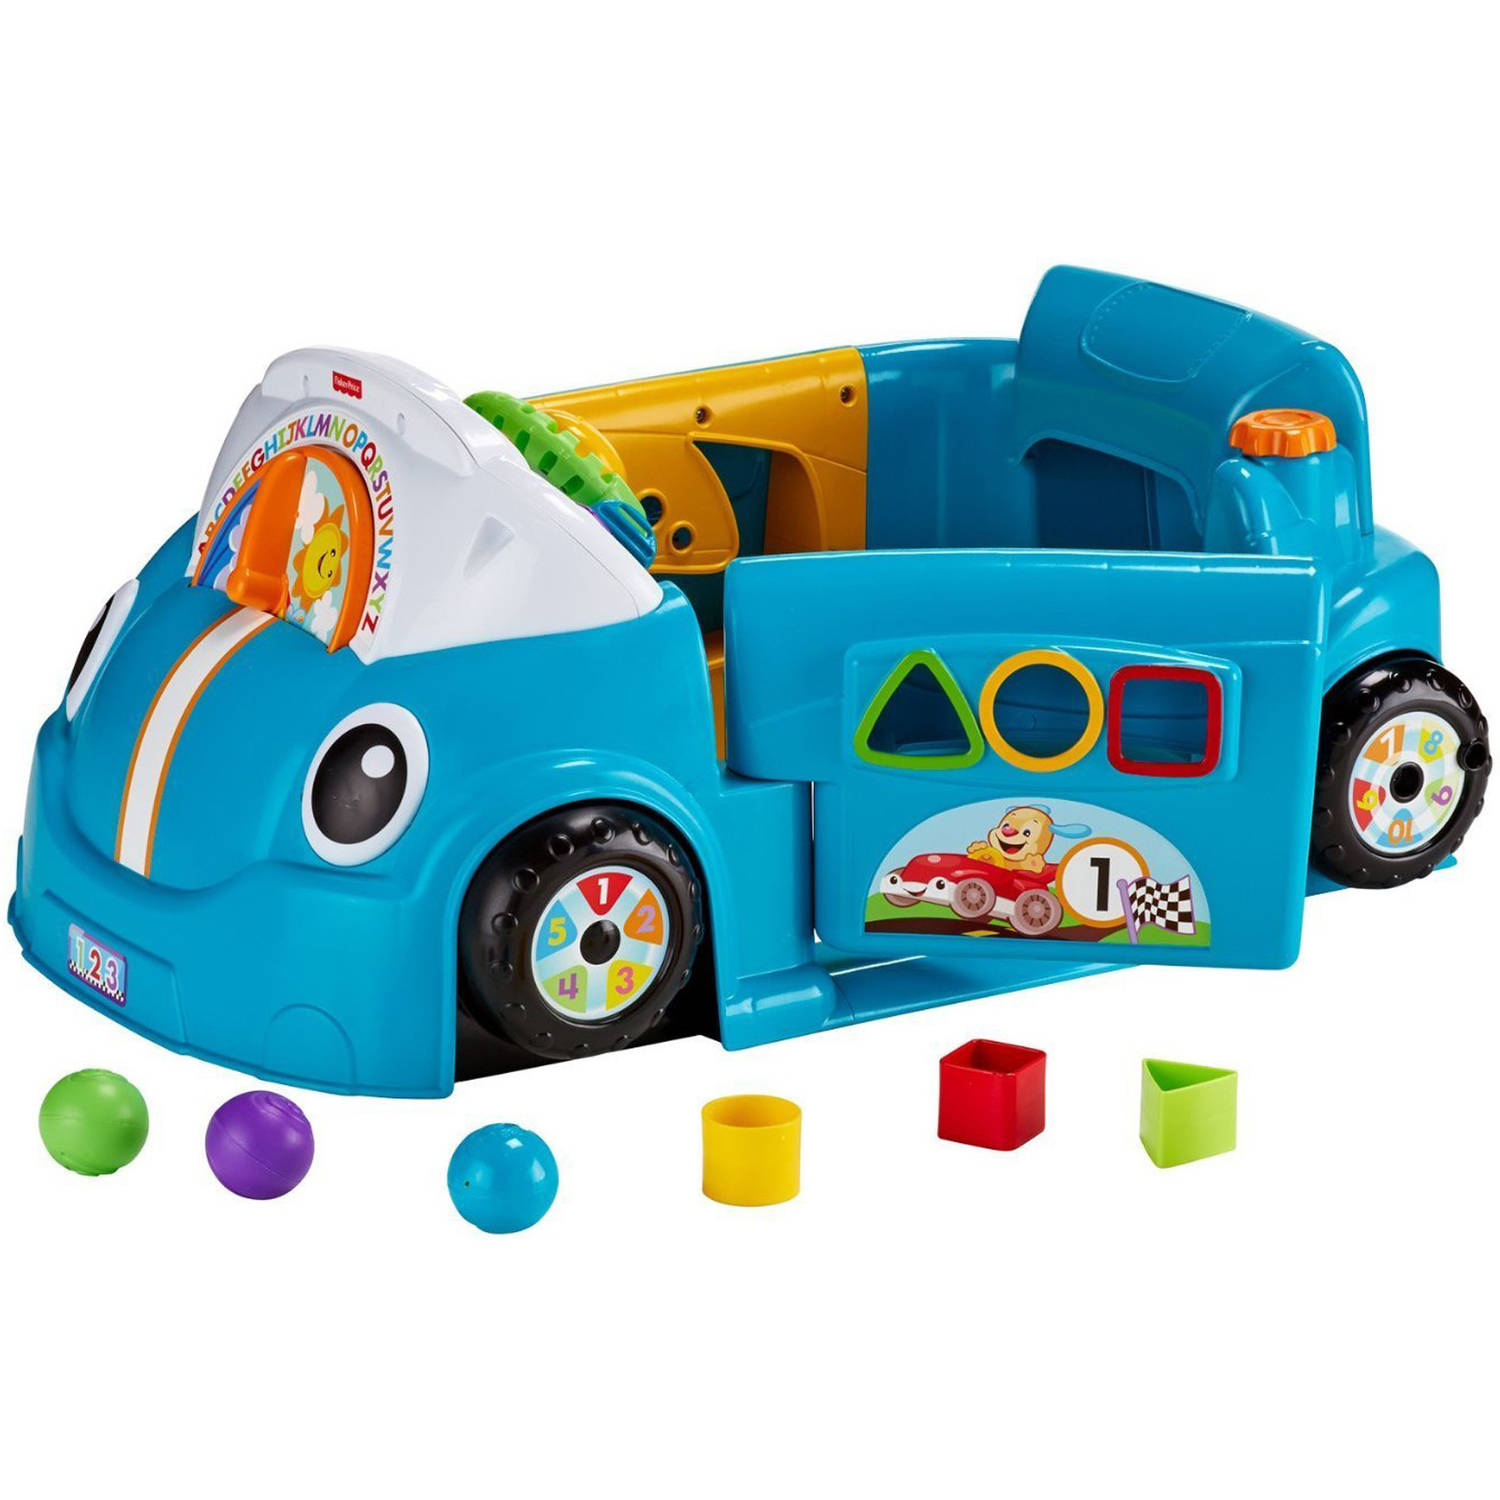 Fisher Price Laugh & Learn Smart Stages Crawl Around Car, Blue by FISHER PRICE